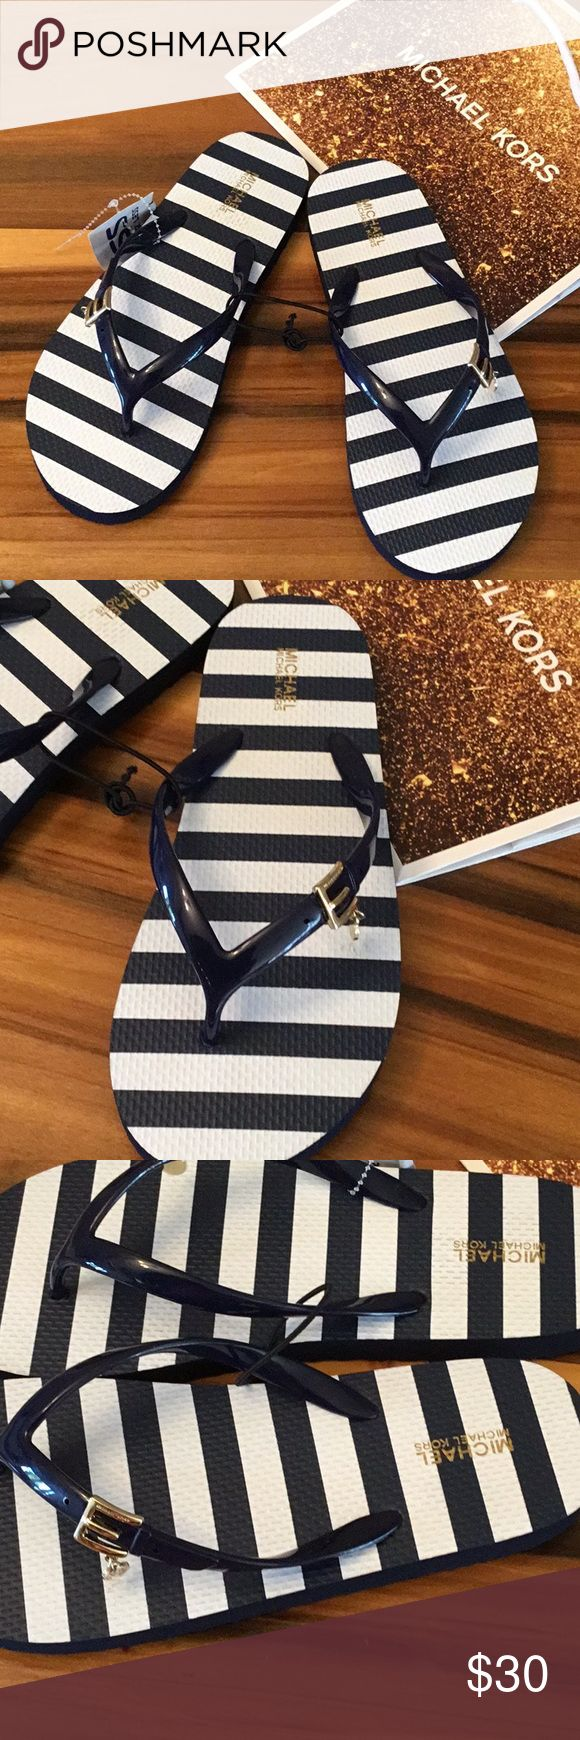 Michael Kors Flip Flops New nautical, navy and white stripe flip flops. Women's size 8. New with tags. Michael Kors Shoes Sandals